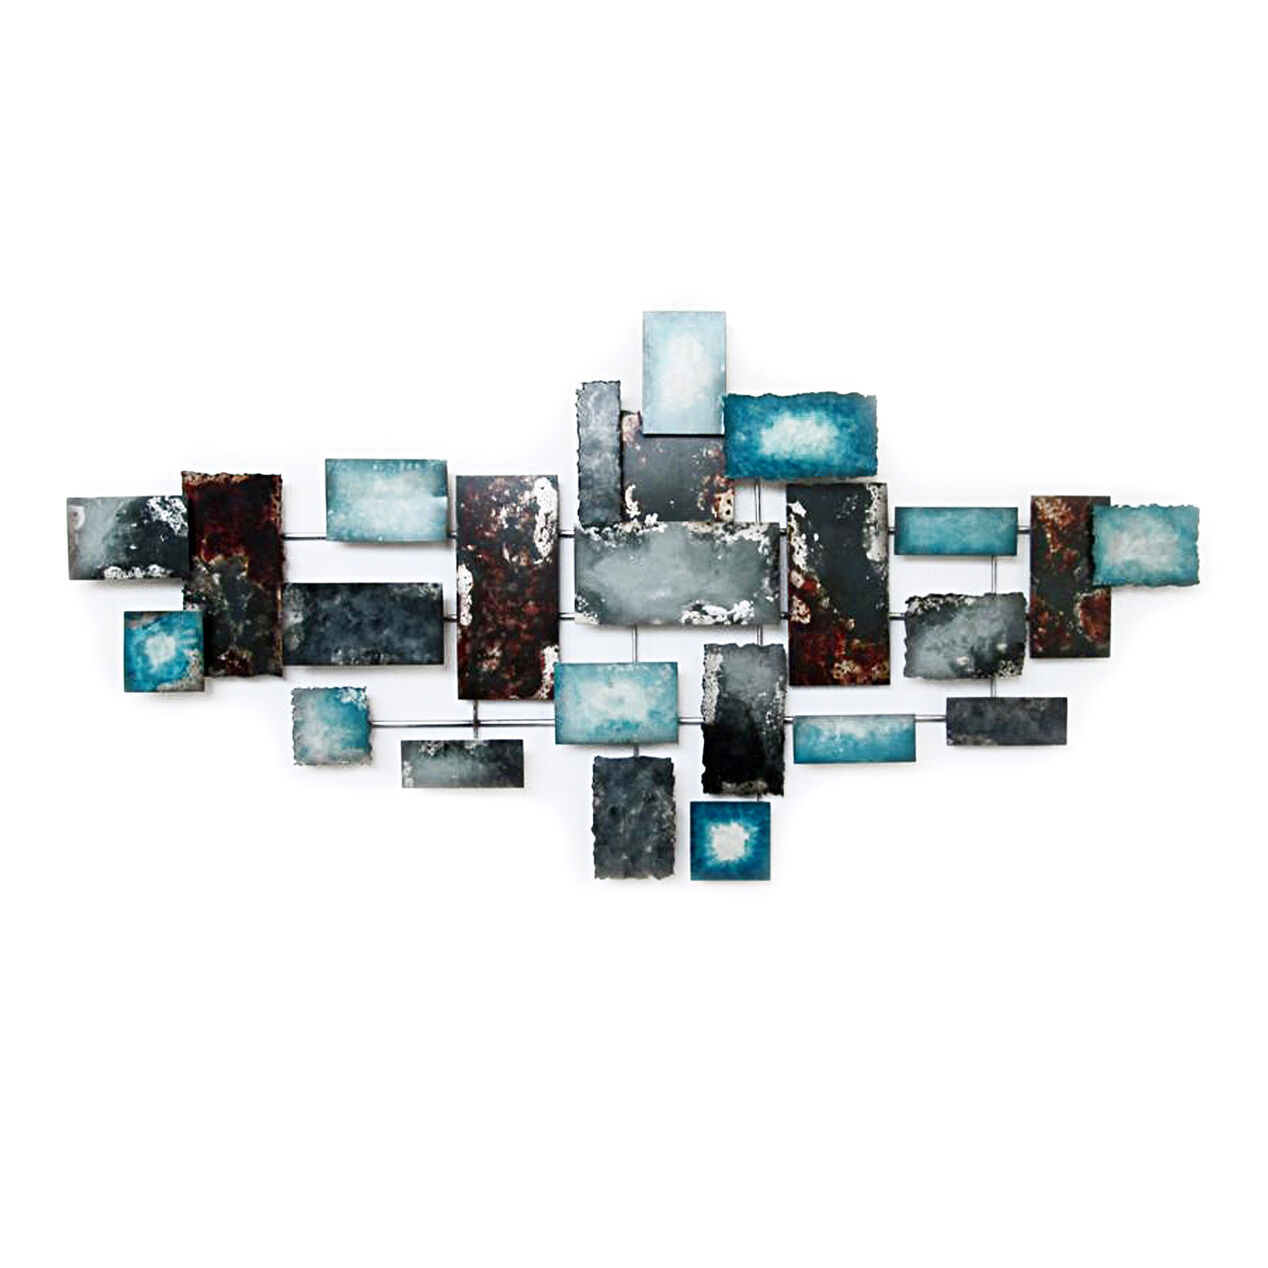 56 x 28 x 2 in turquoise gray blue wall dcor - Blue Wall Decor